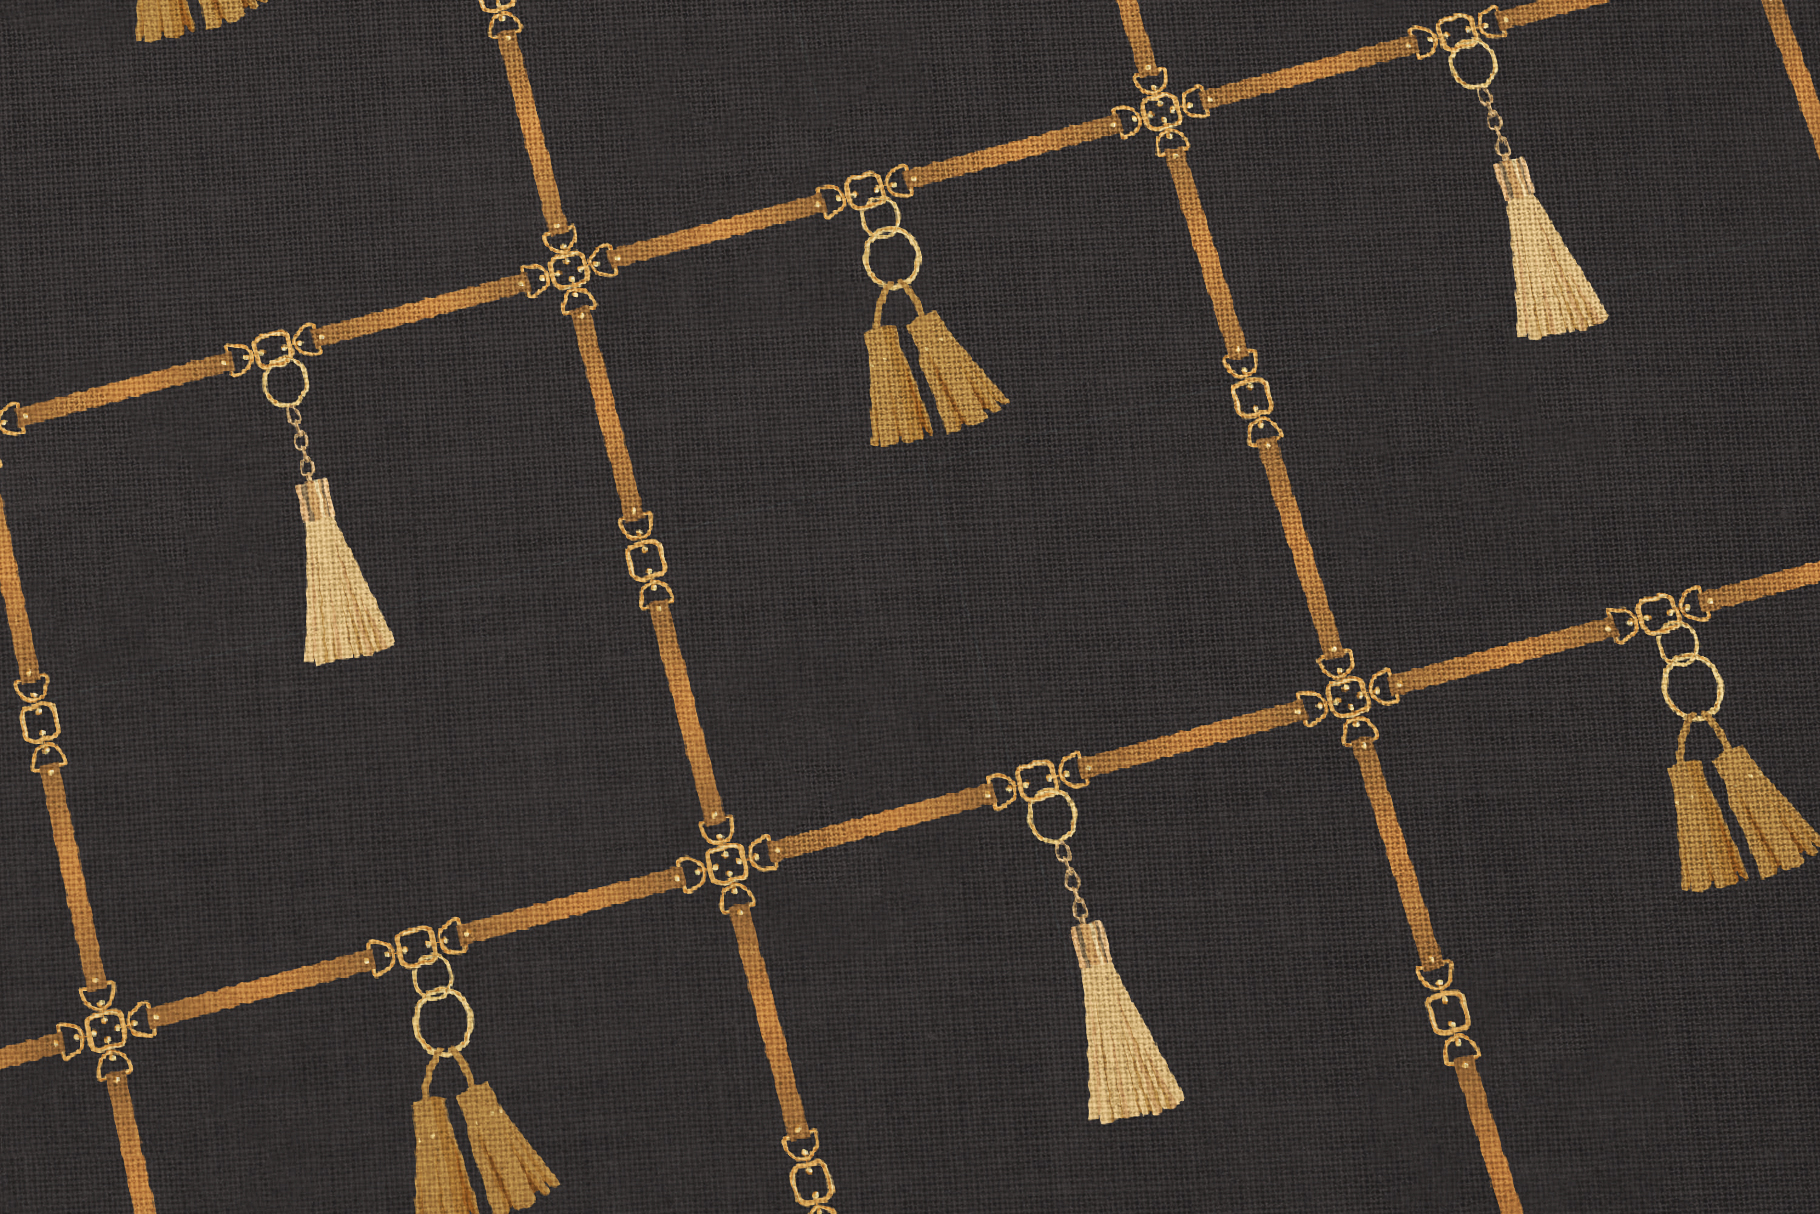 Chains and Belts Seamless Patterns. Set 1 example image 3